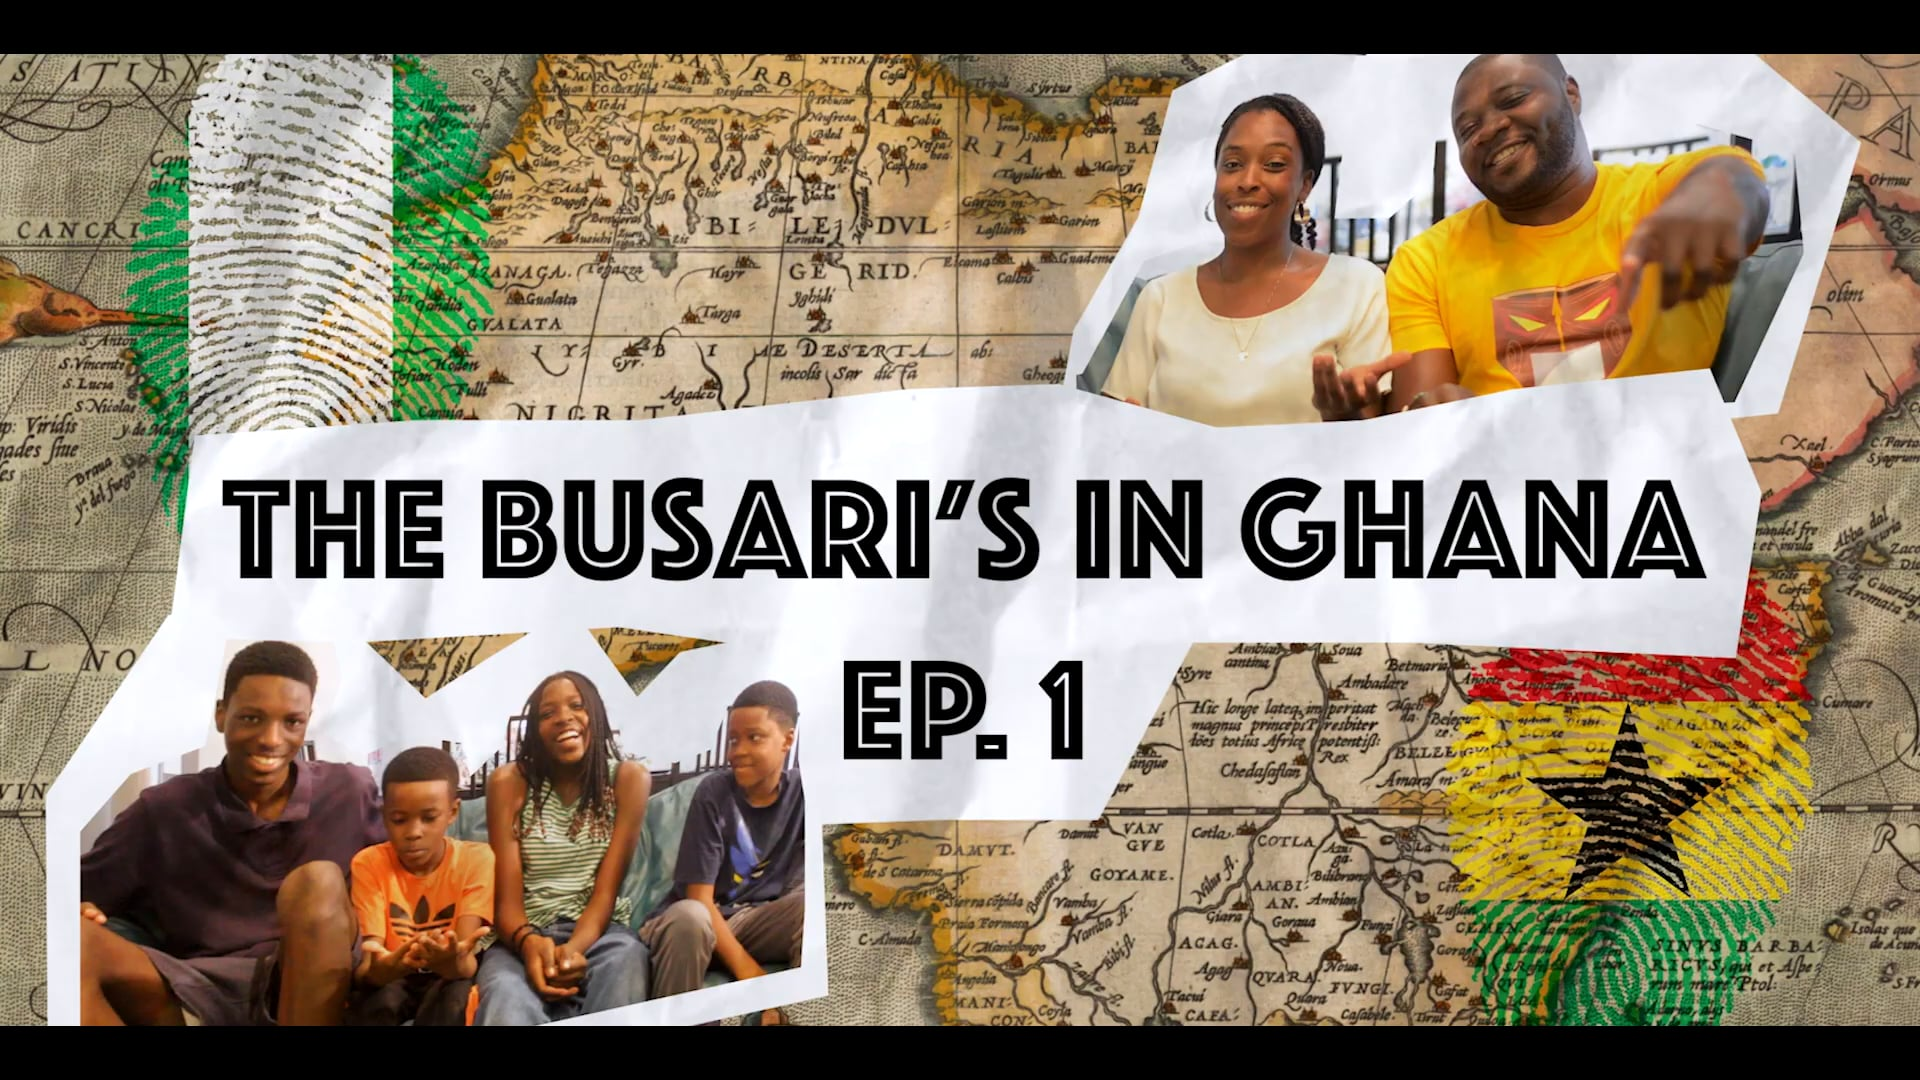 THE BUSARI'S IN GHANA - YES, WE ARE M...